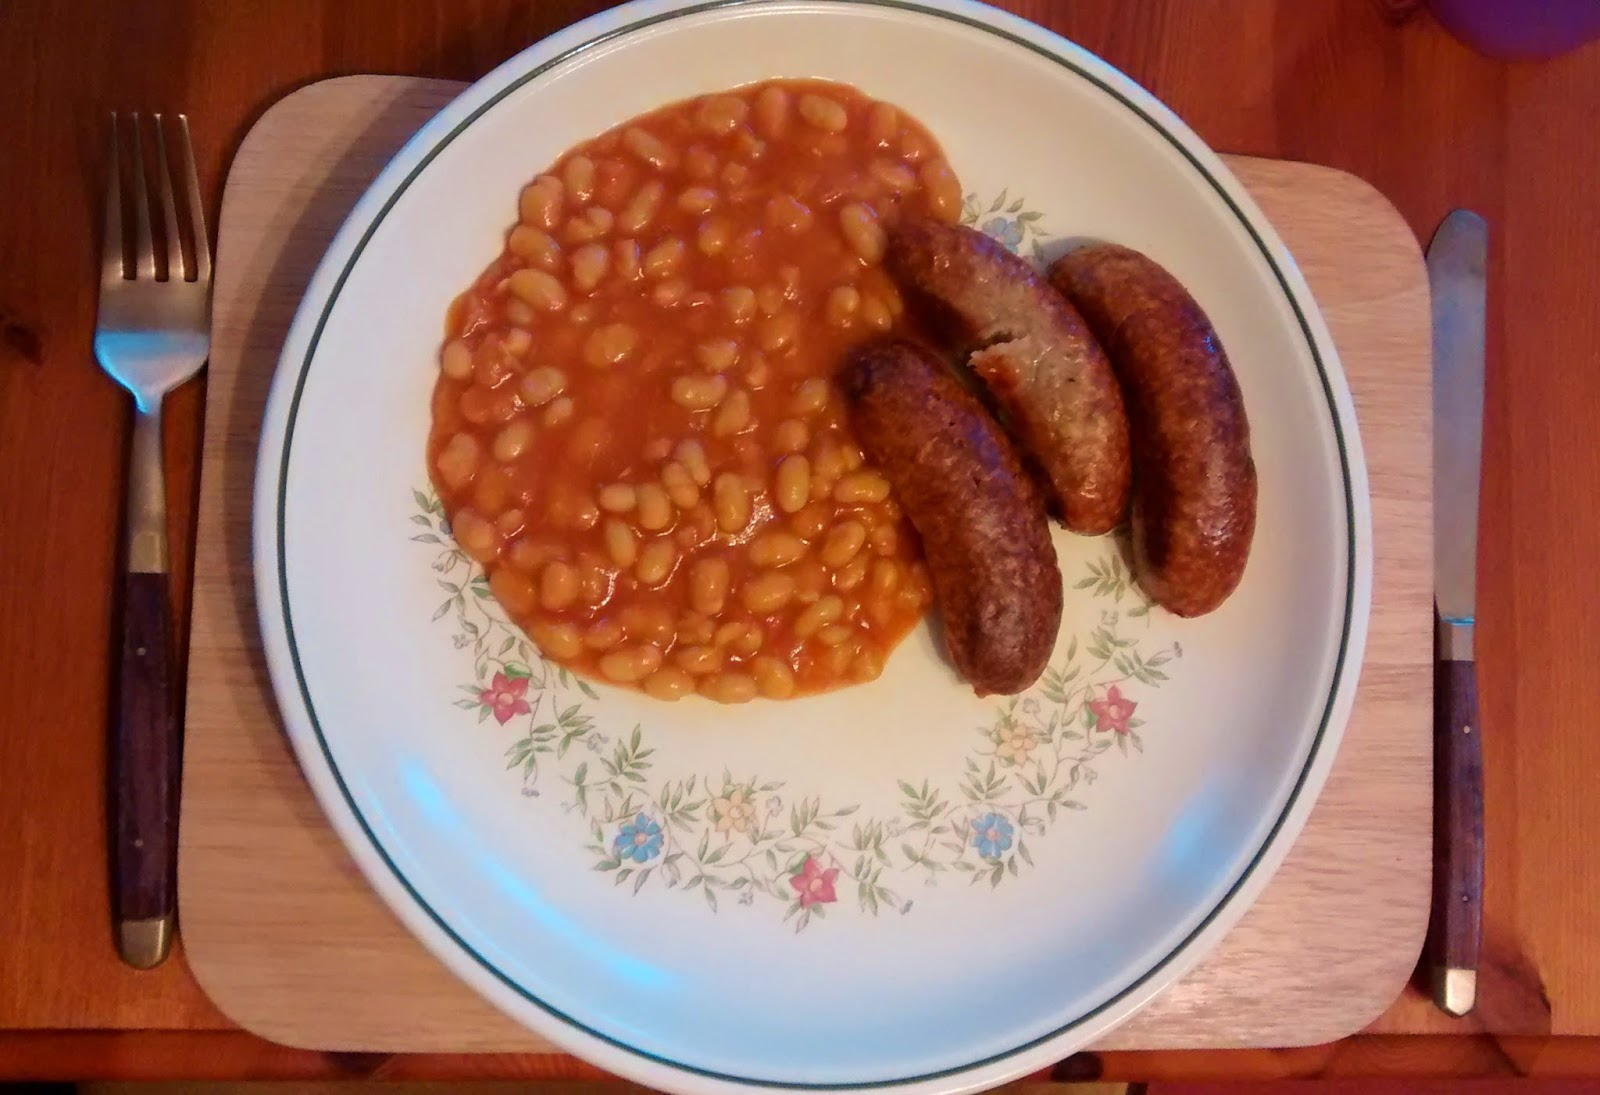 sausages and baked beans dinner meals